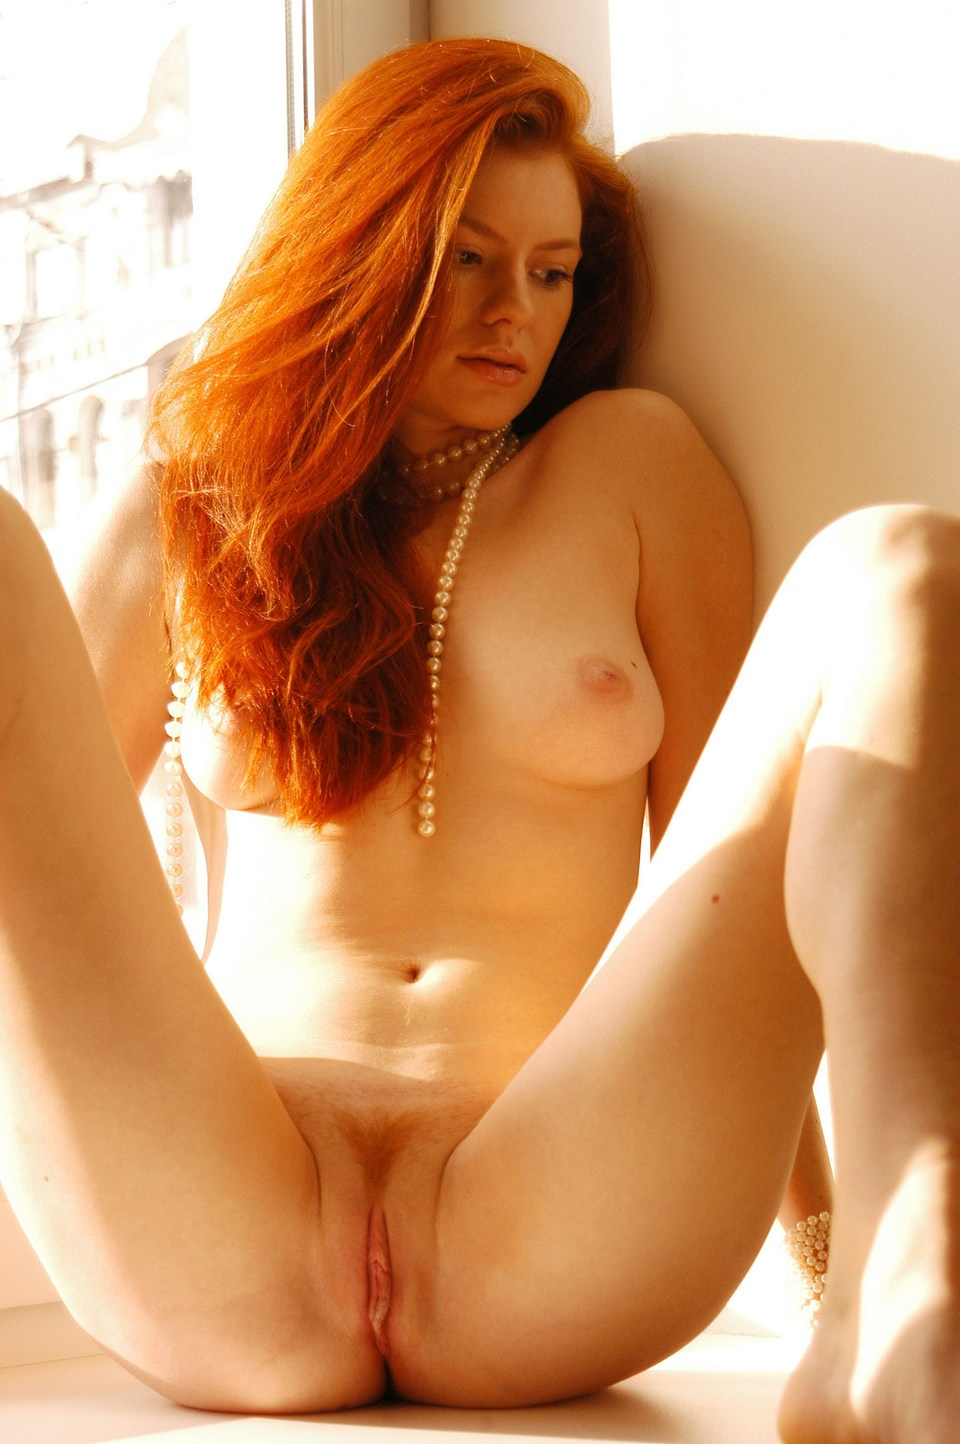 Pics Of Nude Red Heads